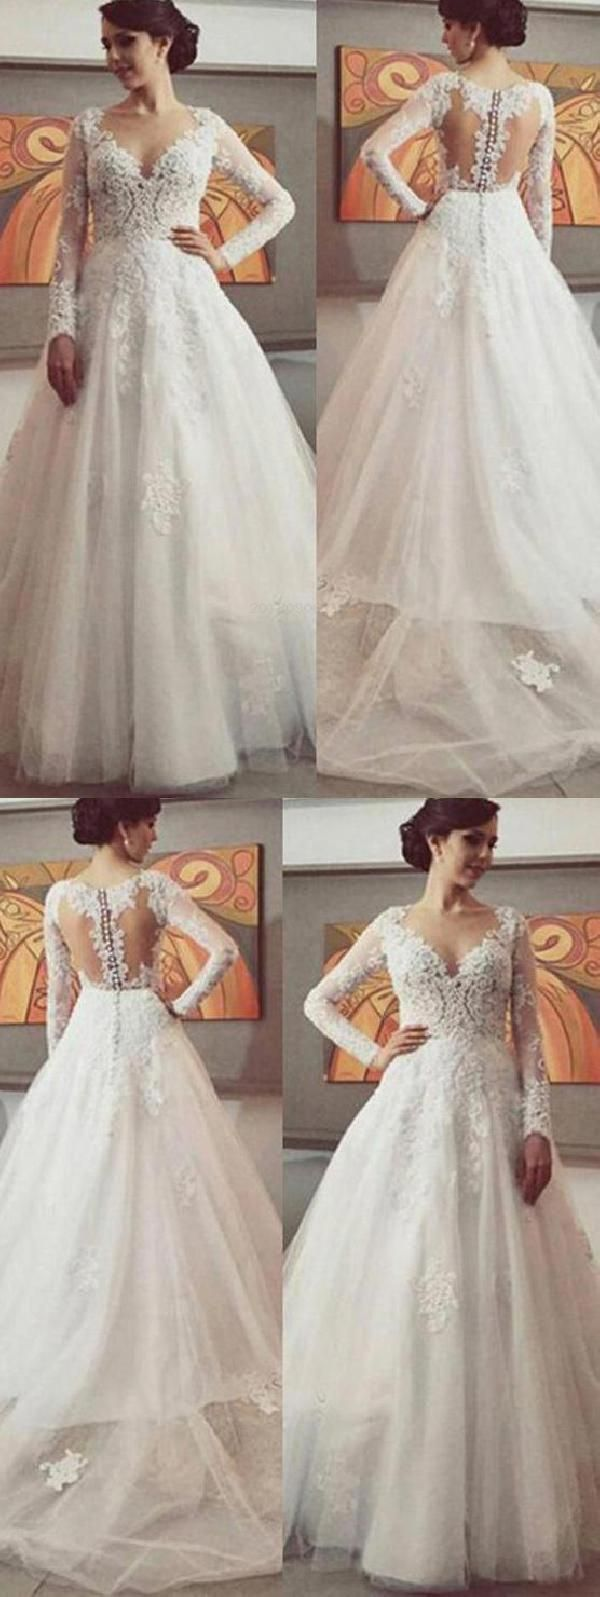 The Designs Of Bridal Gown Alter With The Seasons However There Are A Couple Of Classic Wedding Dresses Lace Beautiful Wedding Dress Lace Wedding Dress Styles